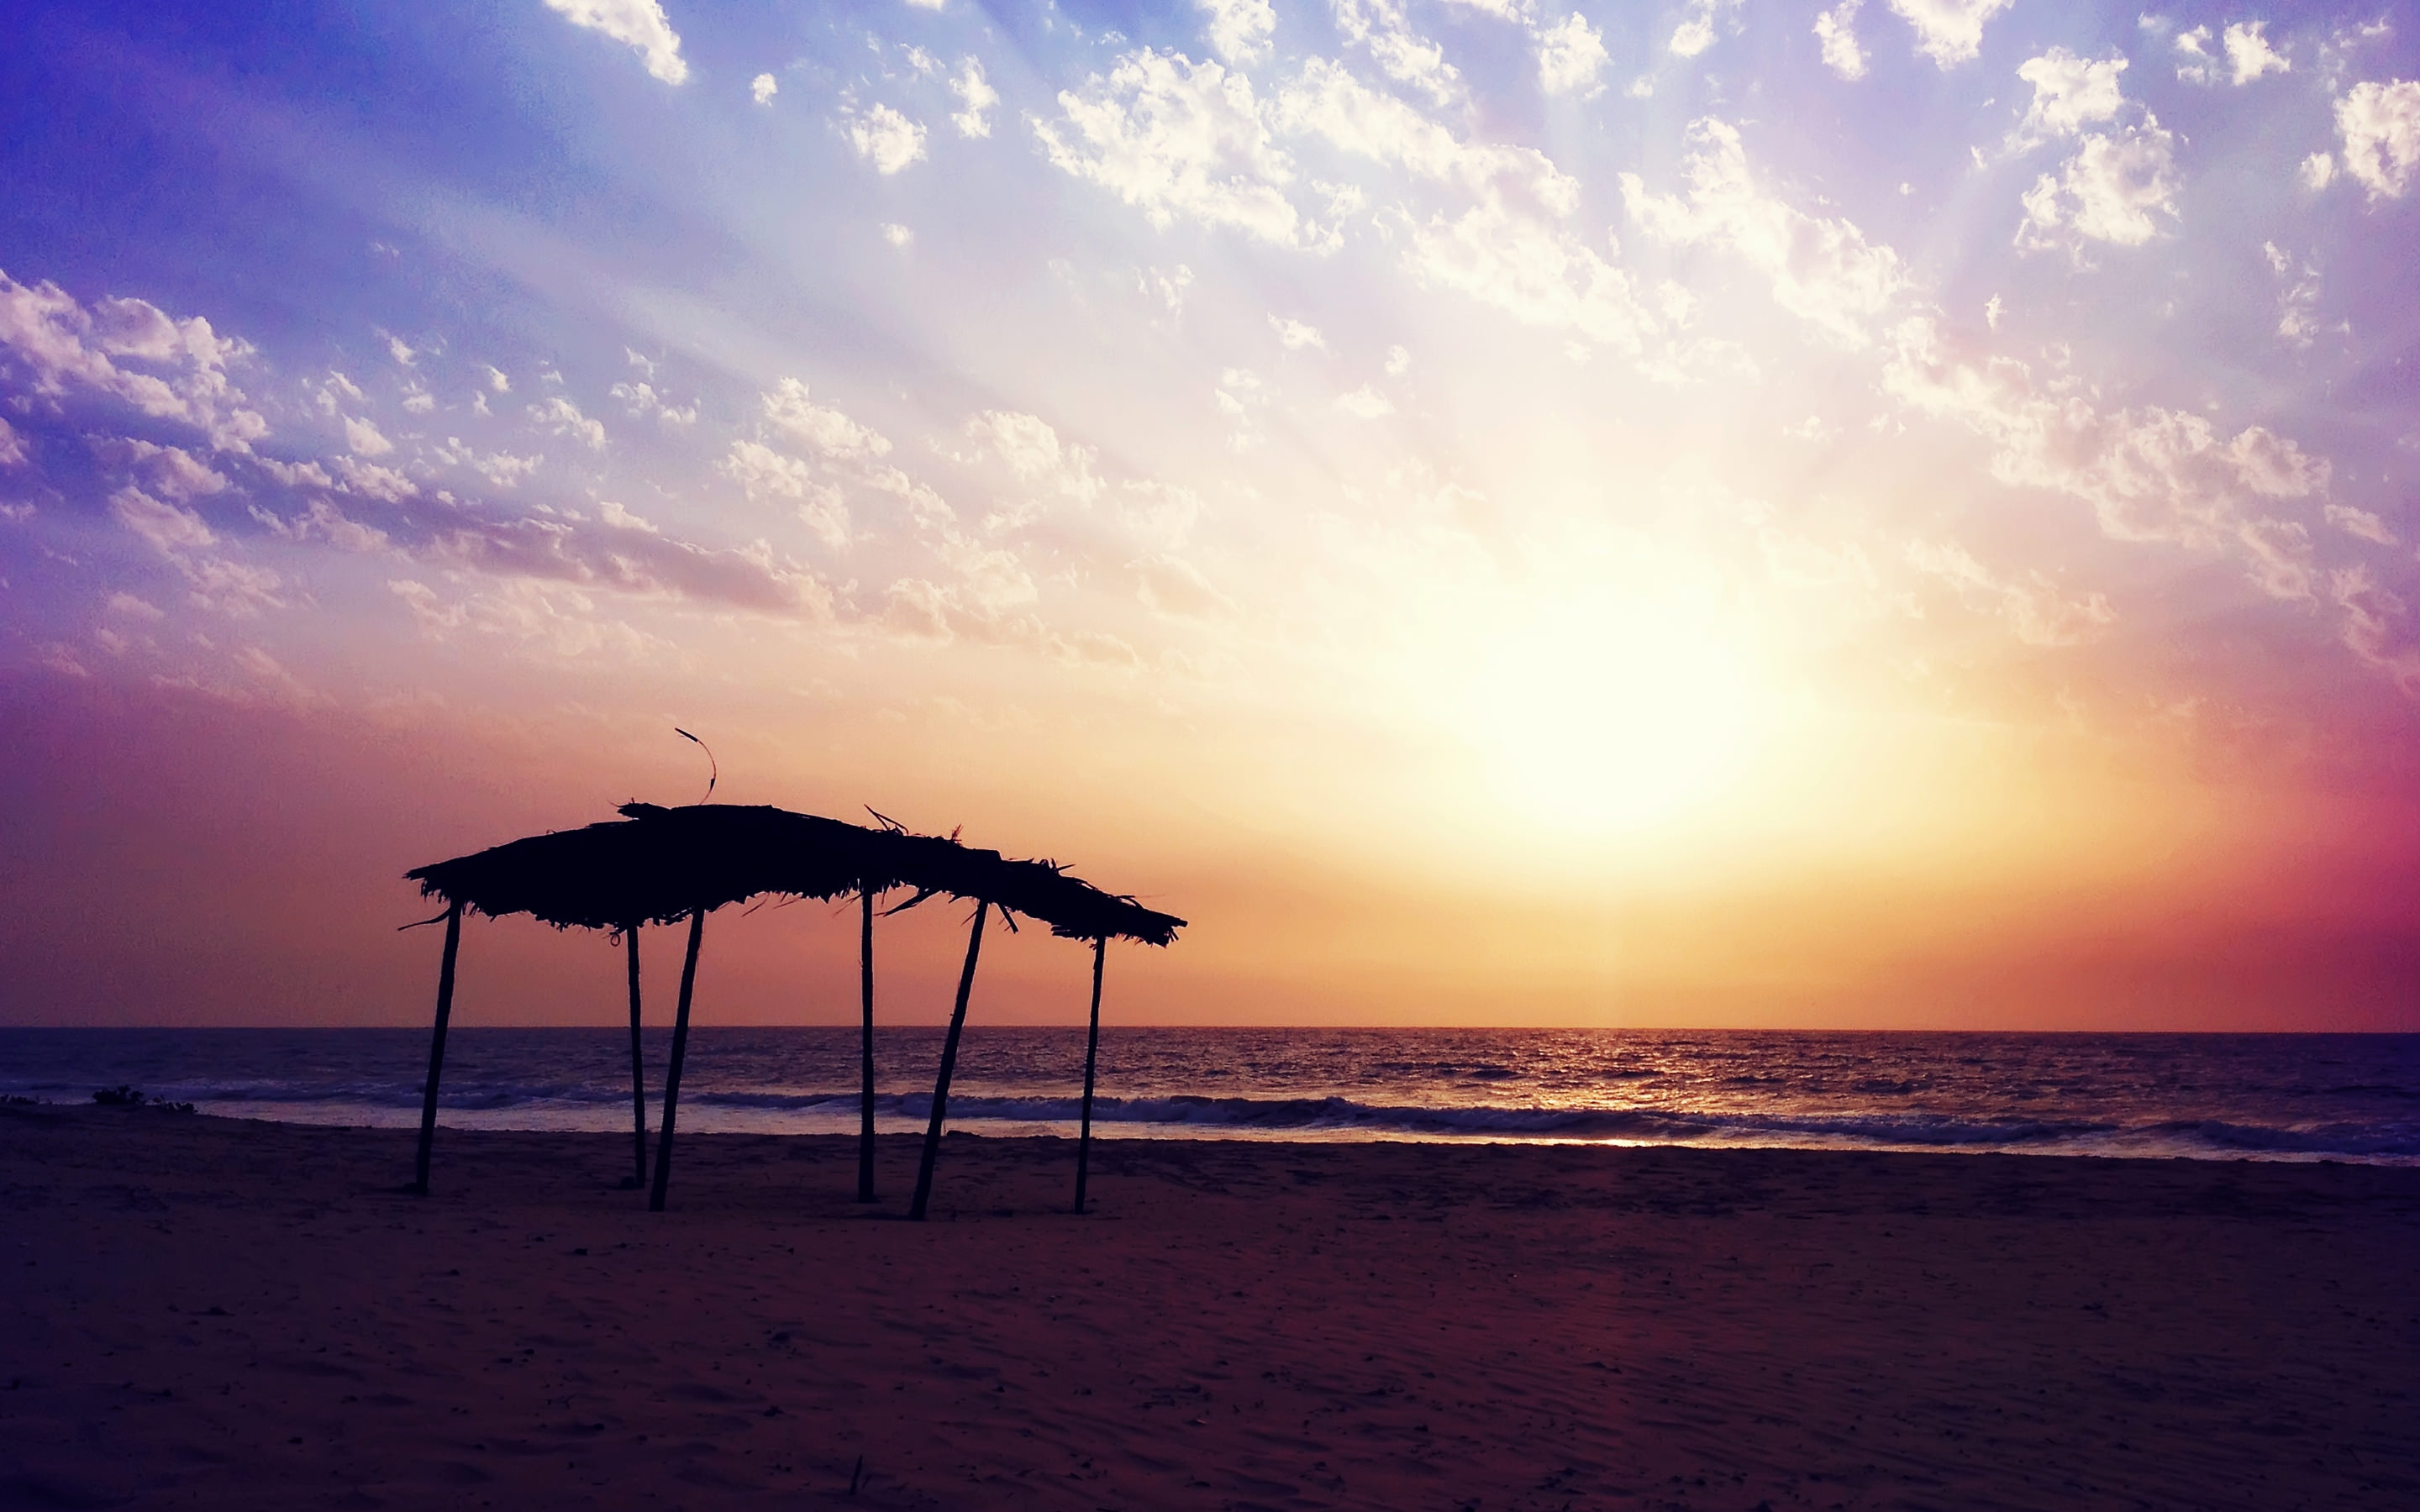 Photo Wallpaper High Quality Wallpaper Beach Scenery: 24+ High Quality Backgrounds, Wallpapers, Images